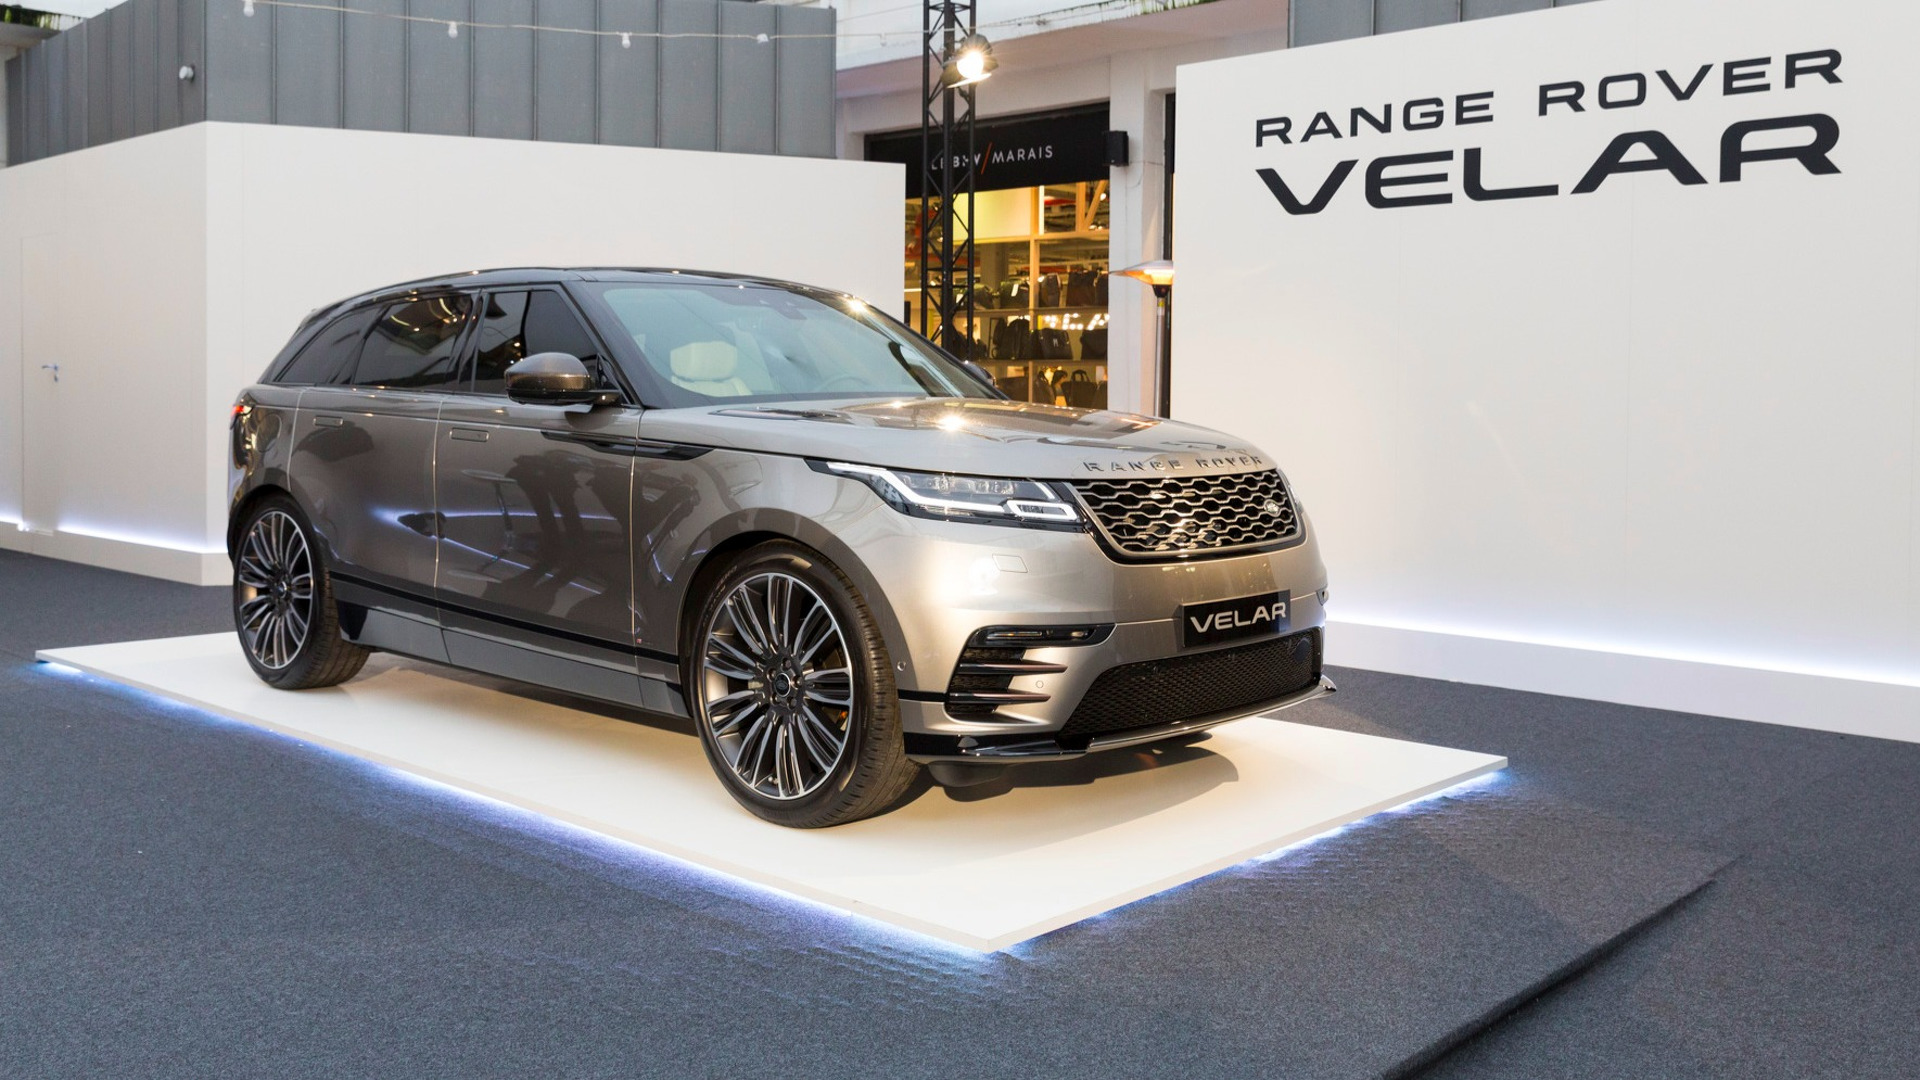 le range rover velar s 39 expose pour la premi re fois paris. Black Bedroom Furniture Sets. Home Design Ideas